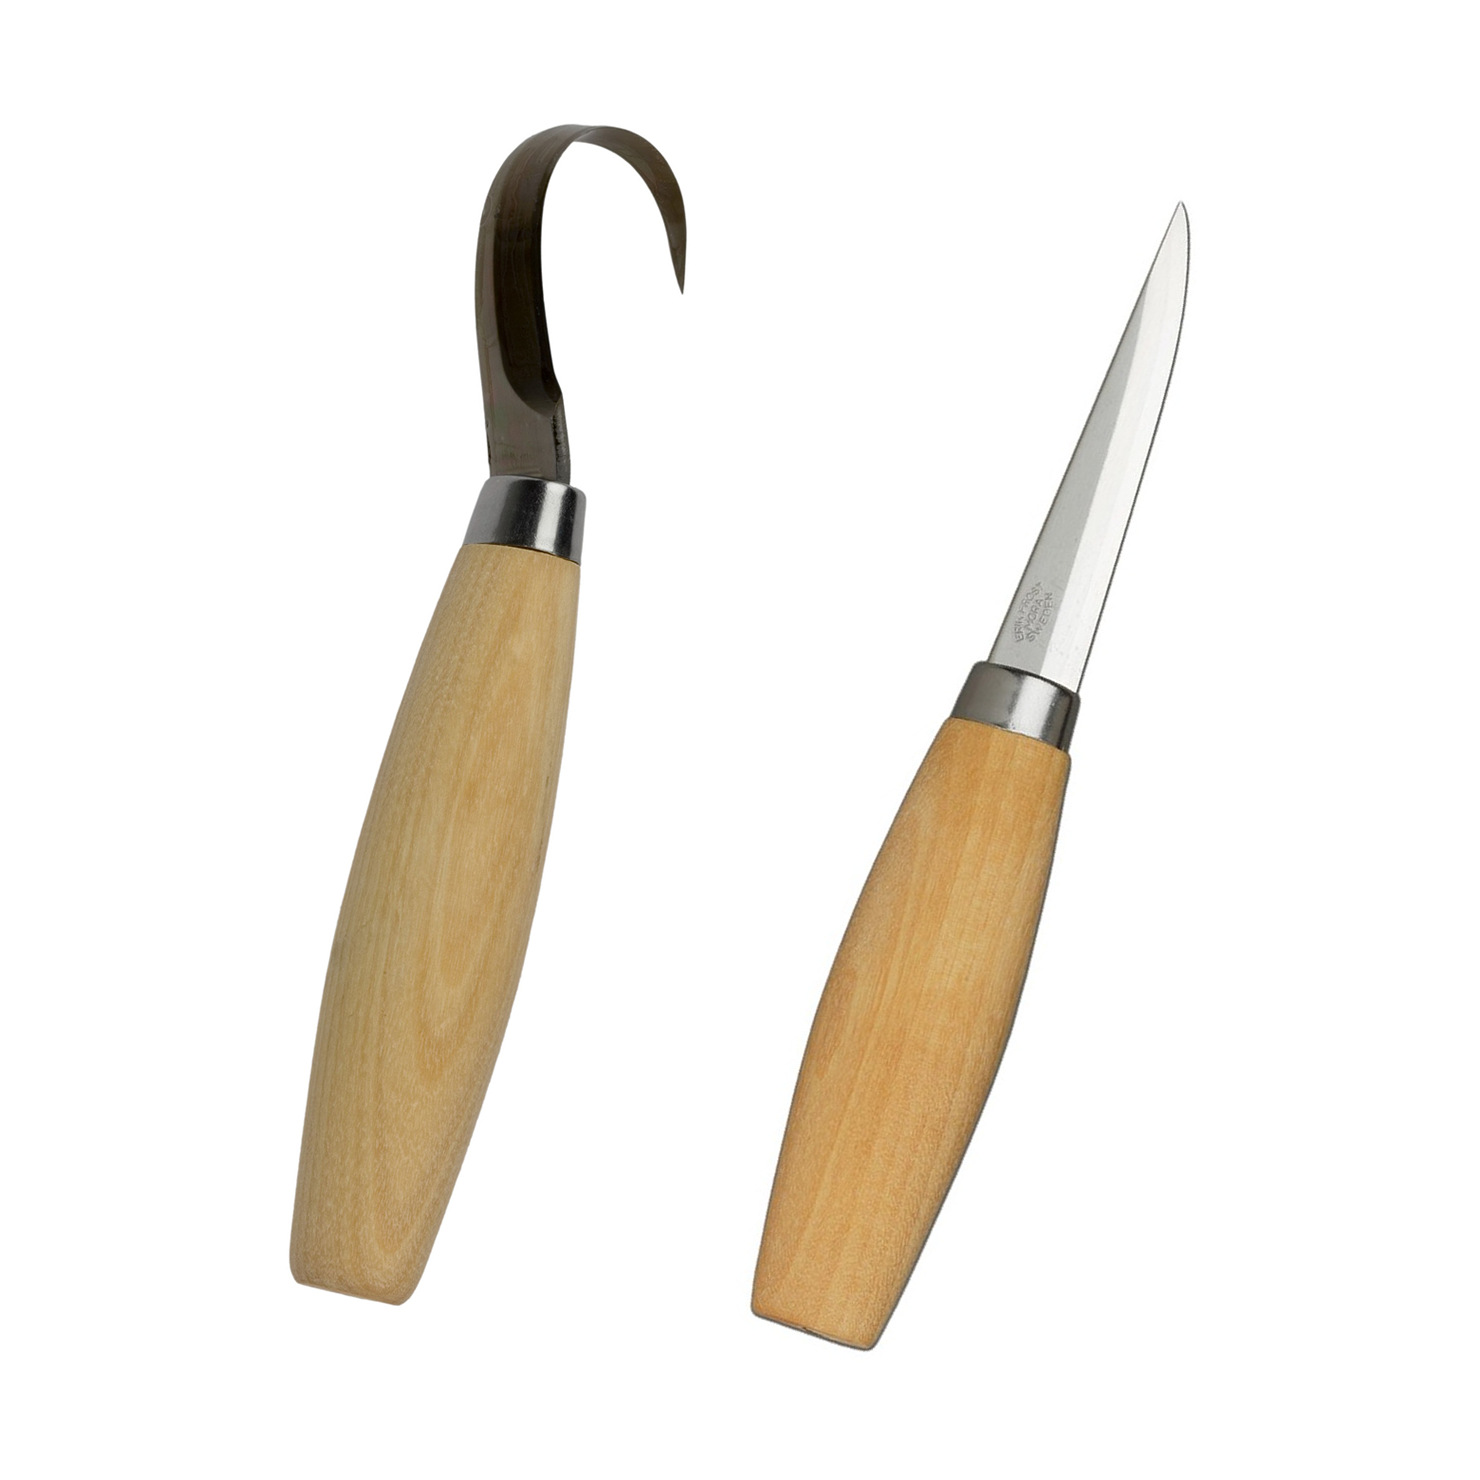 Mora 164 And 106 Wood Amp Spoon Carving Knife Set Made In